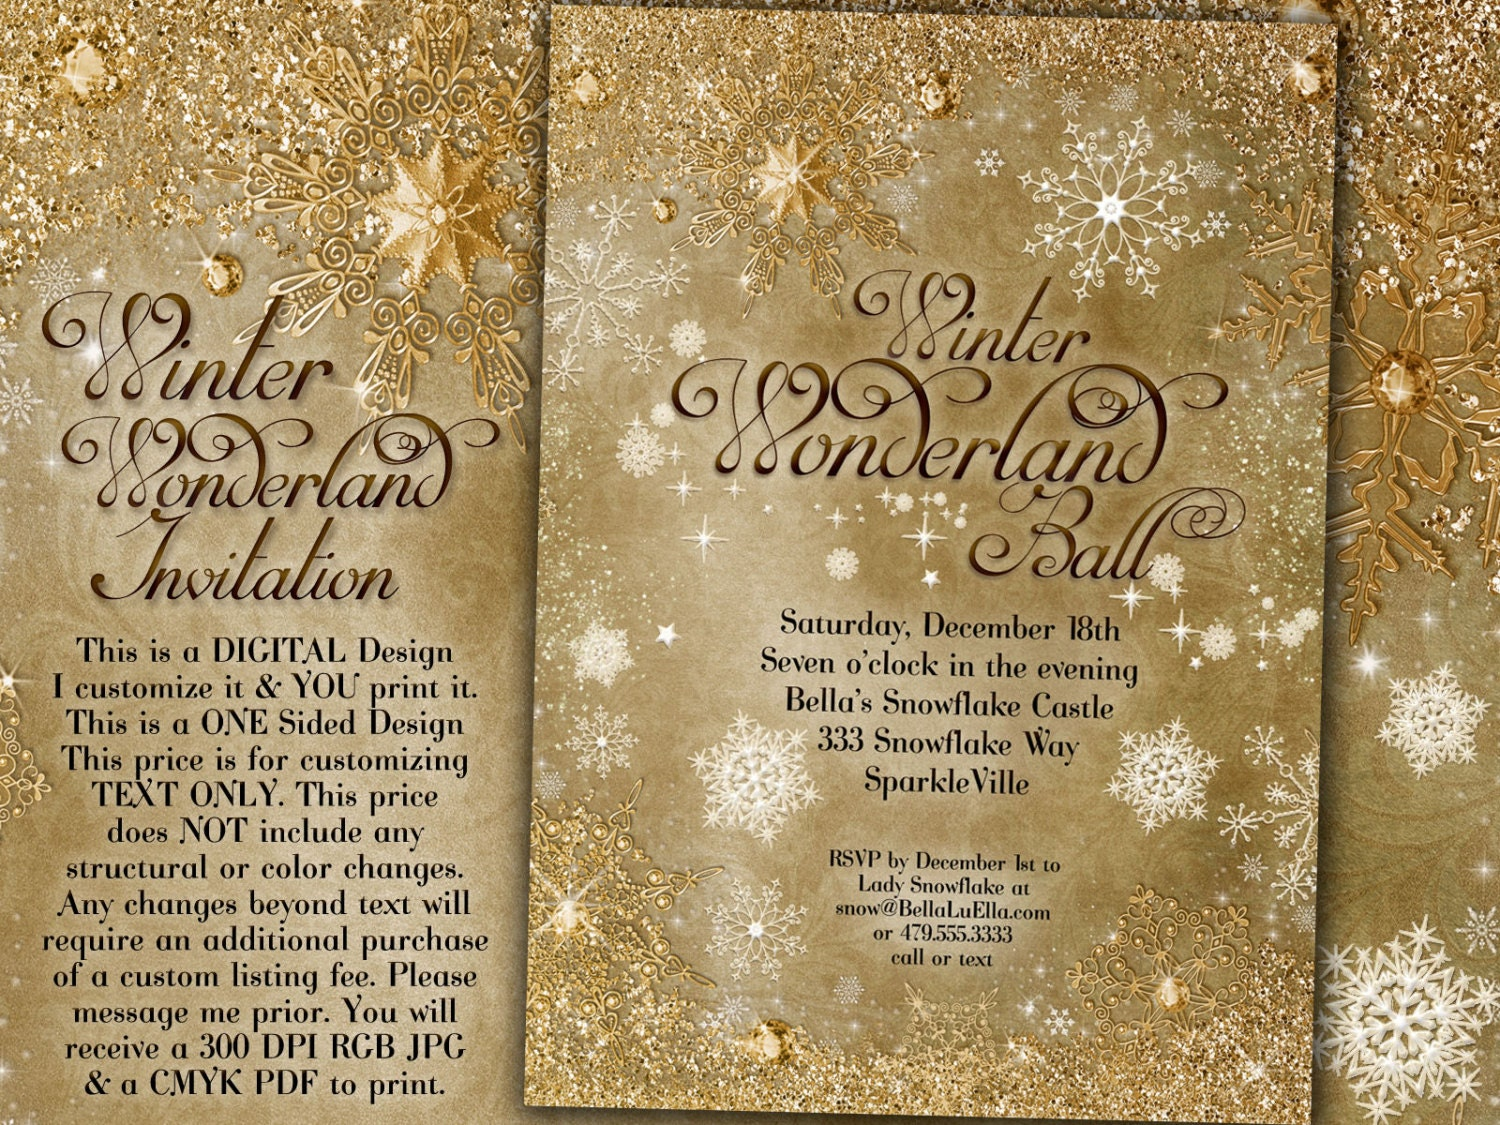 gold snowflake invitation winter wonderland party invitation, party invitations